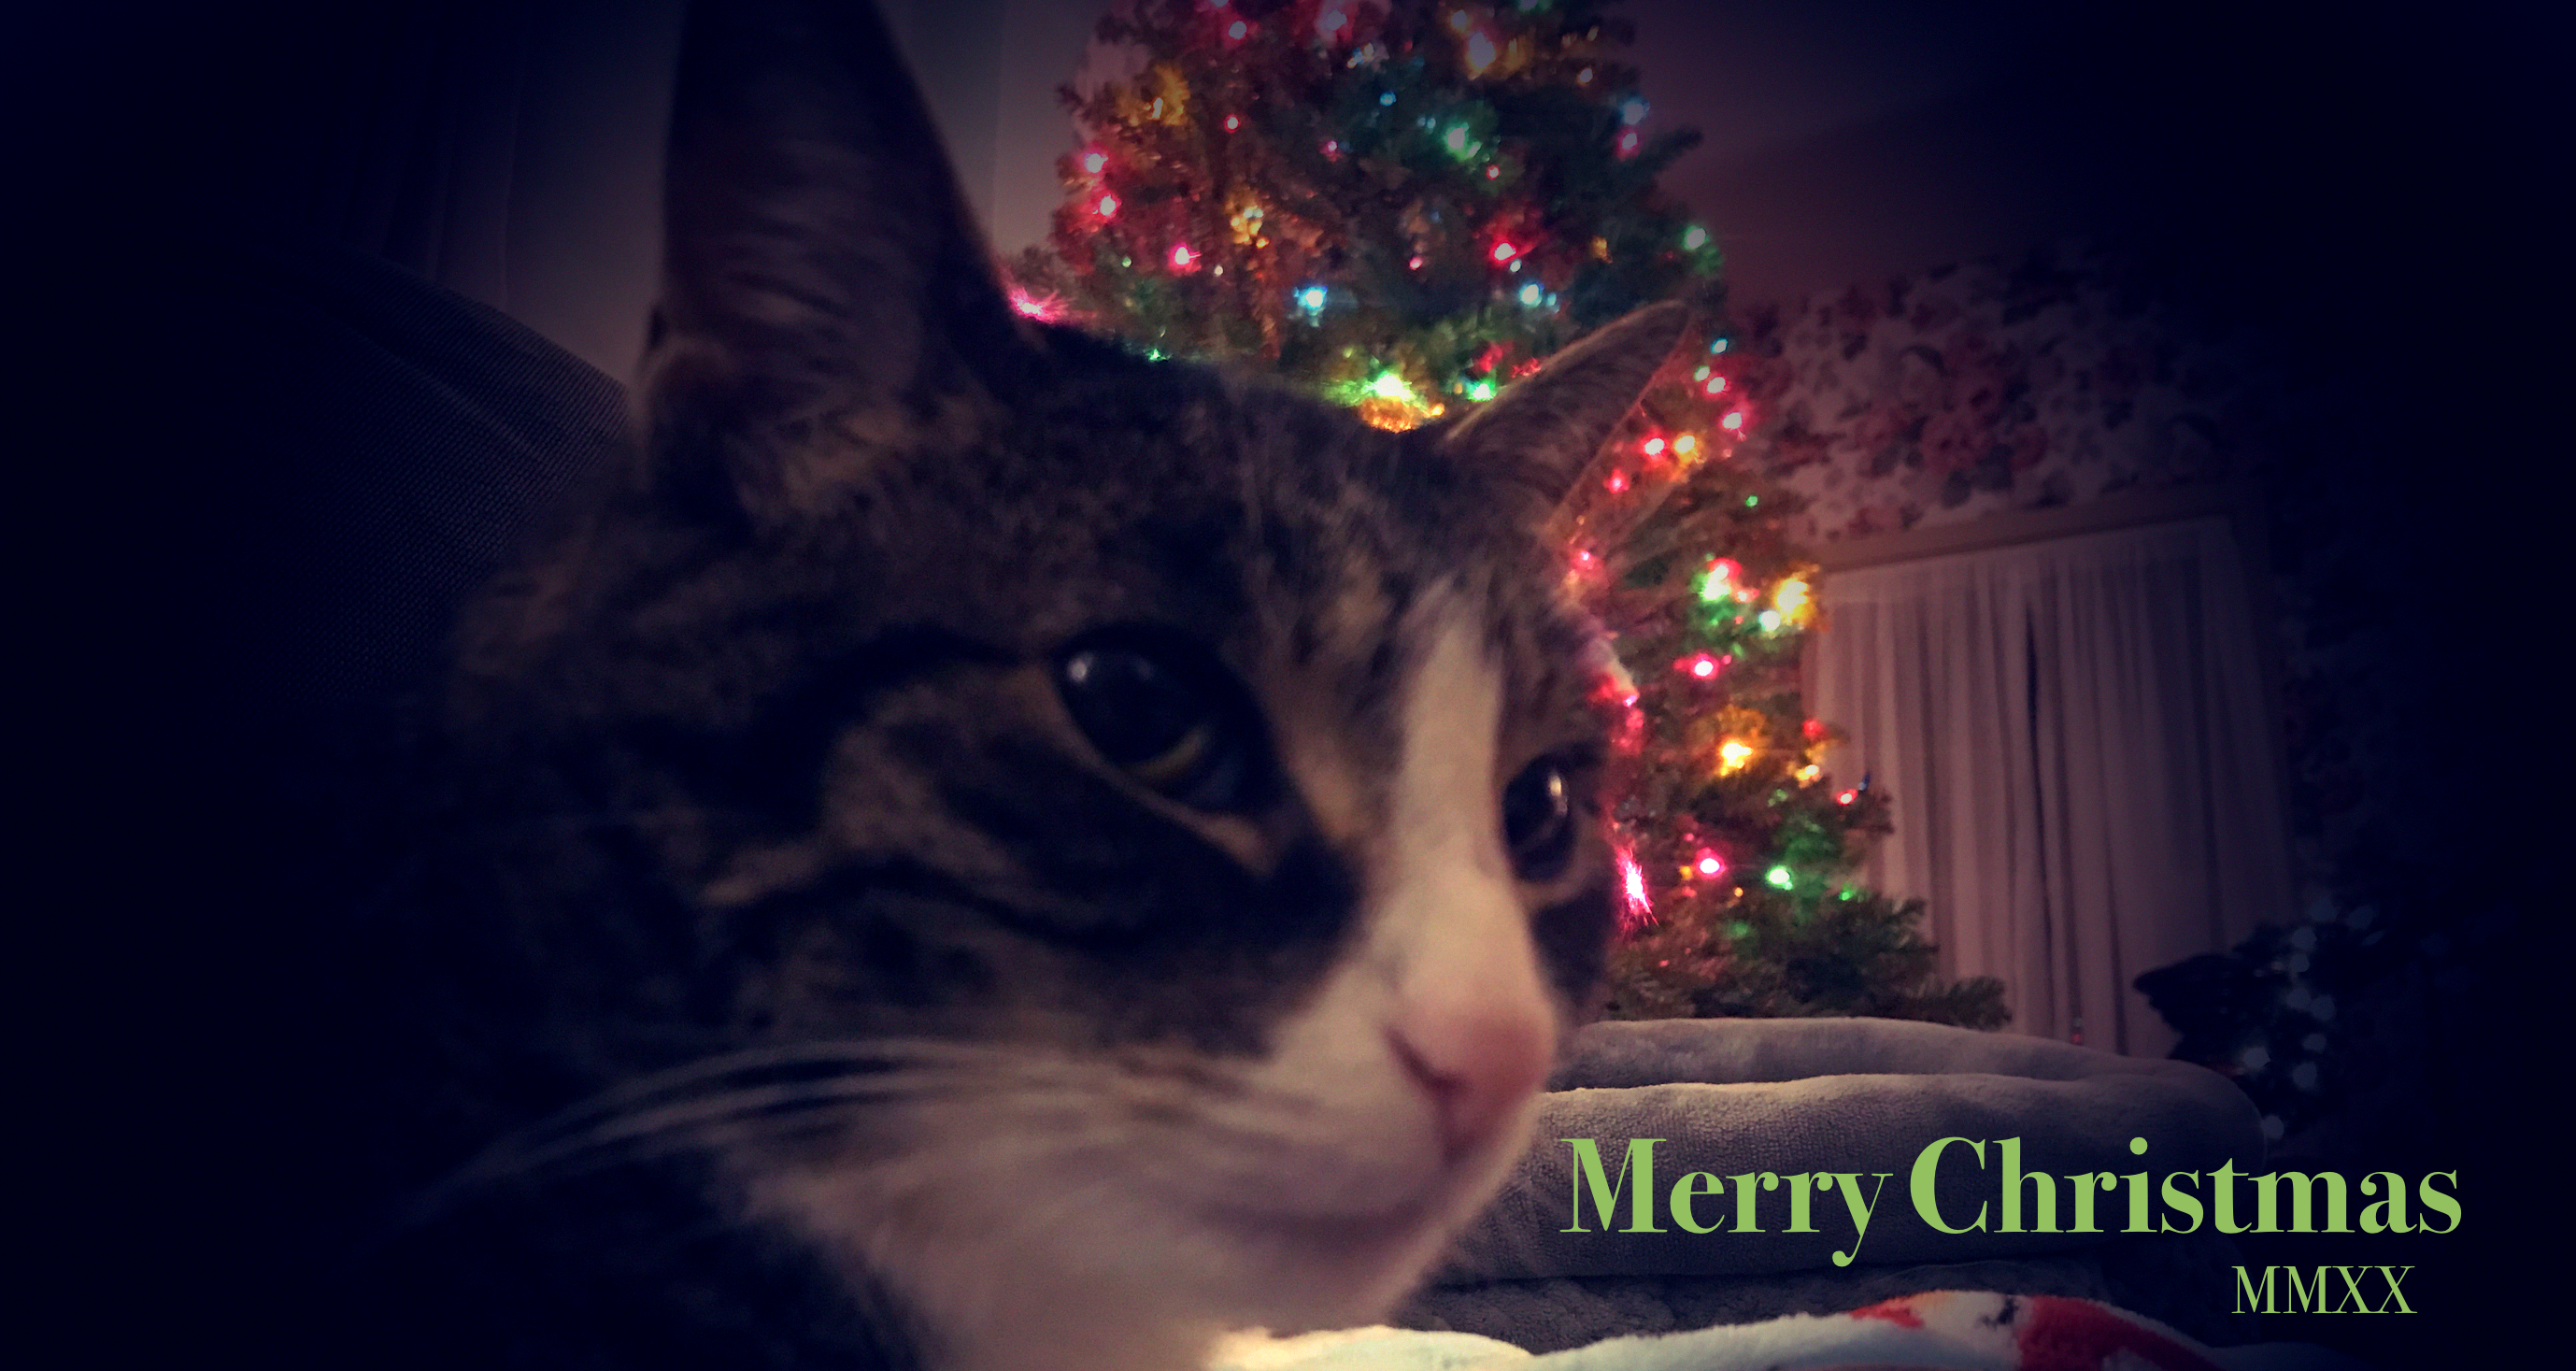 Merry Christmas from Molly and I